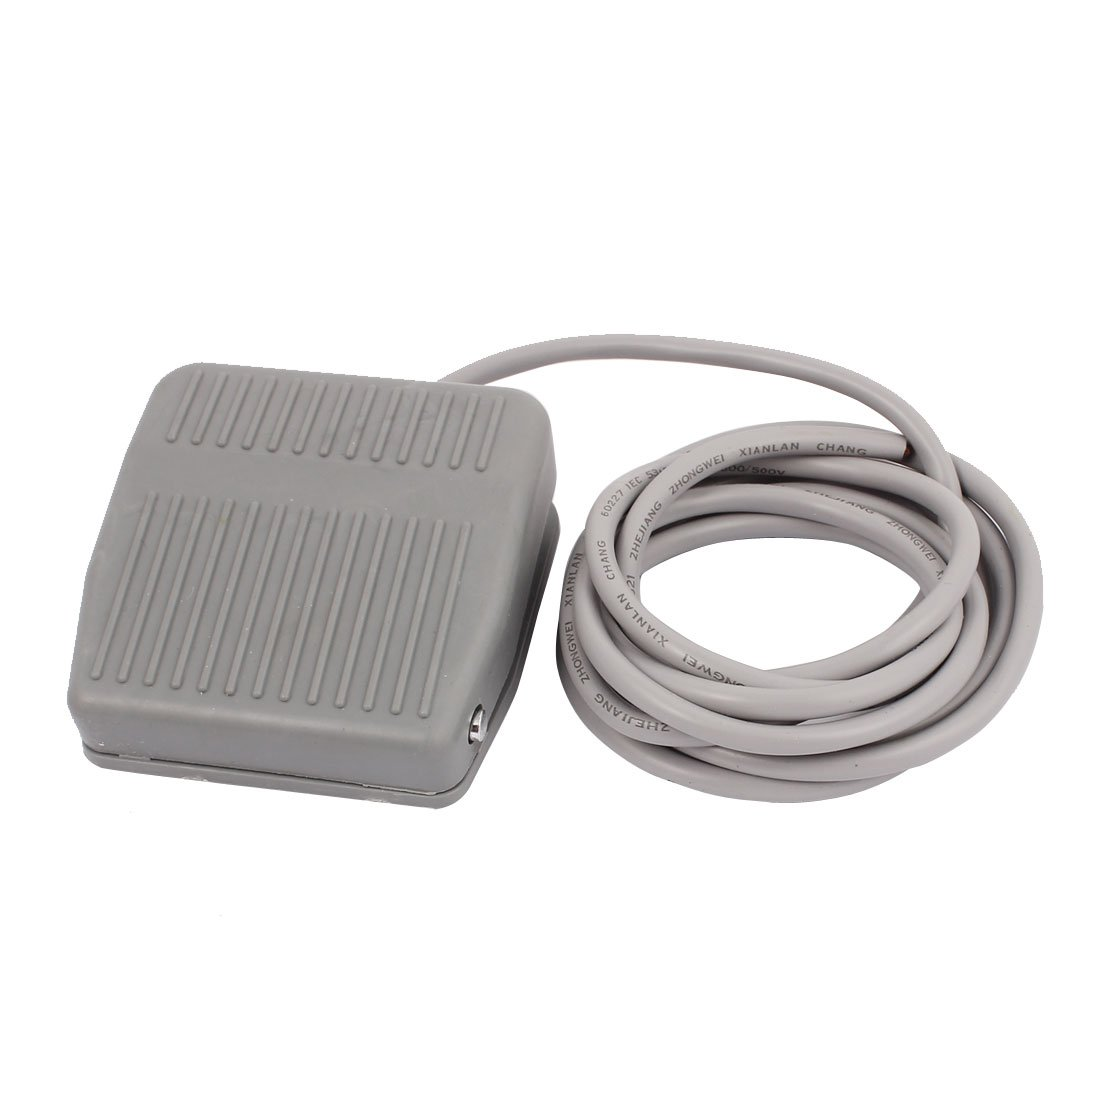 AC 250V 10A SPDT NC NO Momentary Power Foot Pedal Switch w 2M Cable